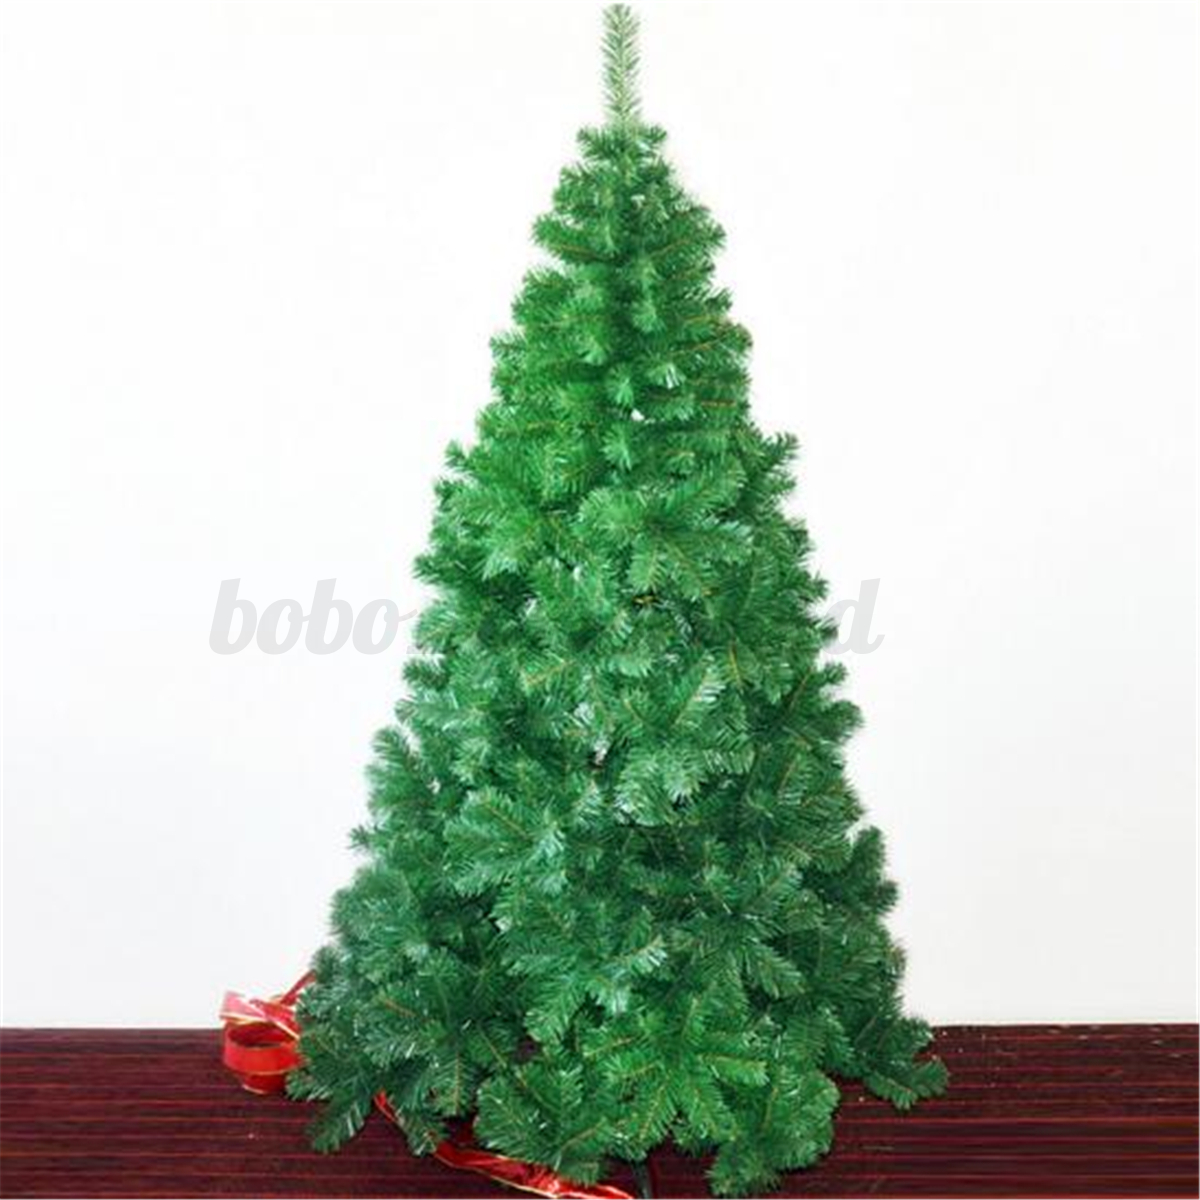 Two Become One Decorative Trees: 1.5/1.8/2.1m Large Artificial Christmas Tree Realistic